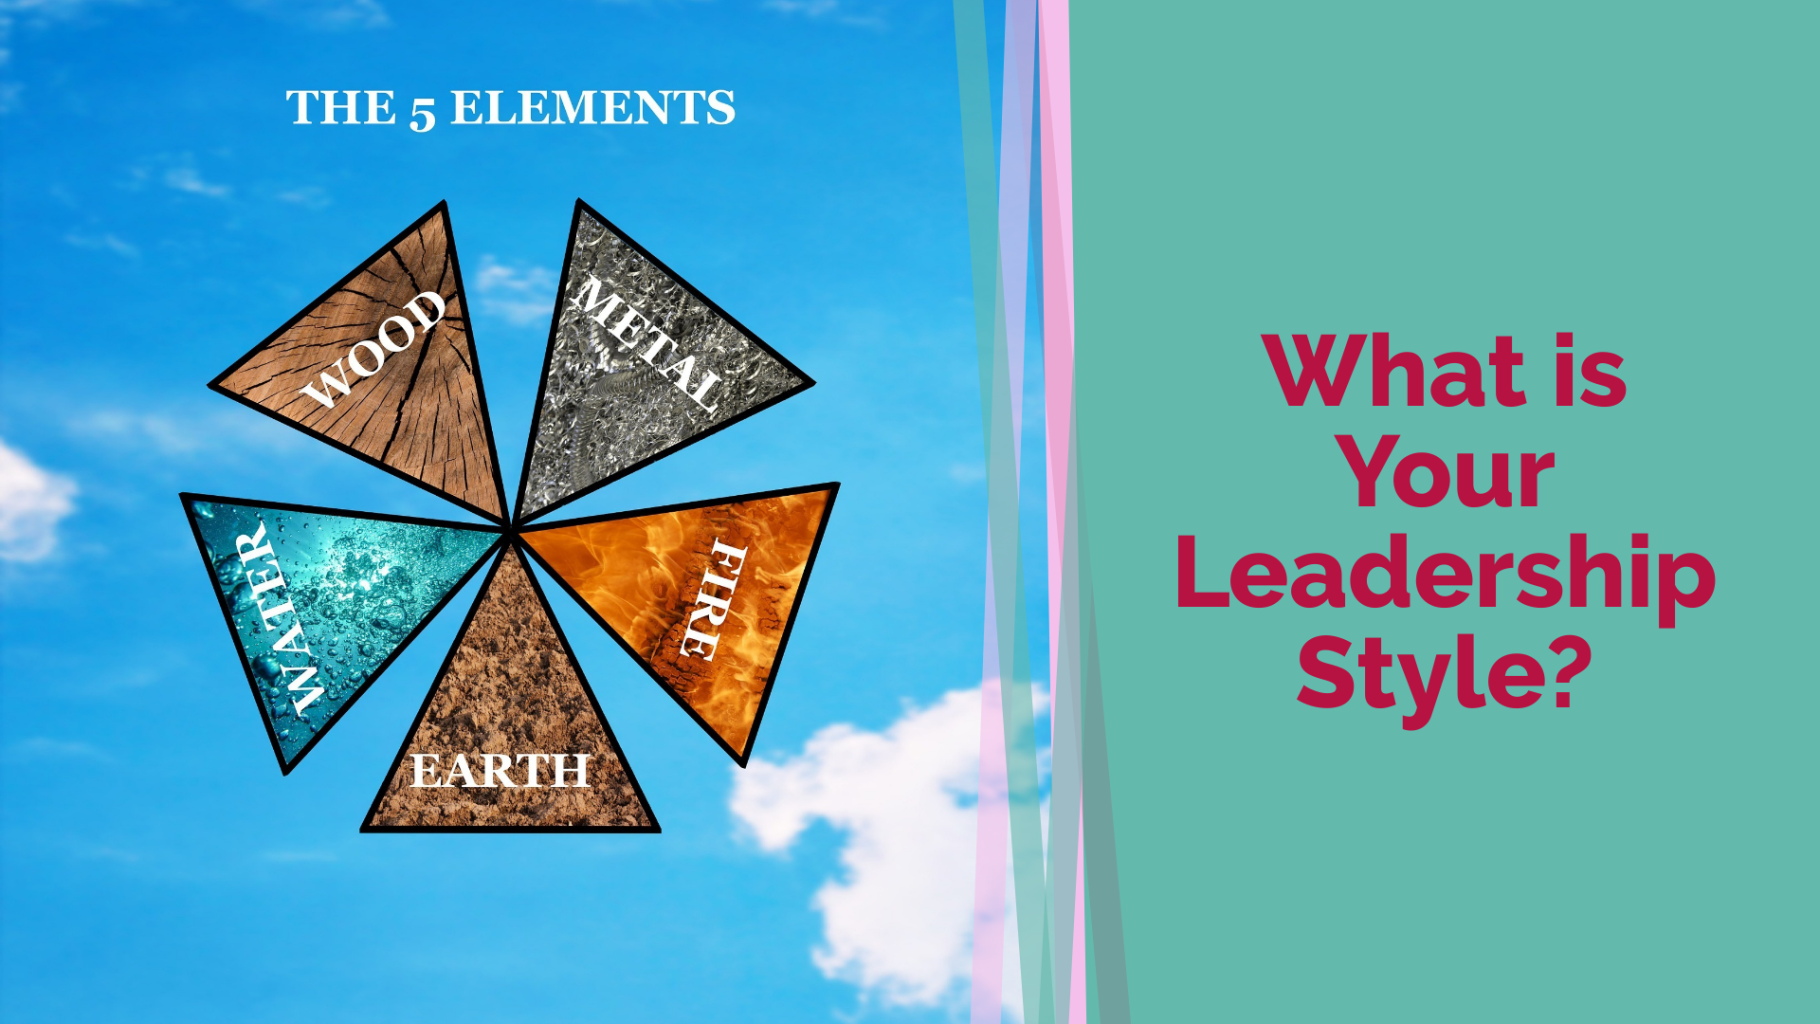 What's Your Leadership Style?